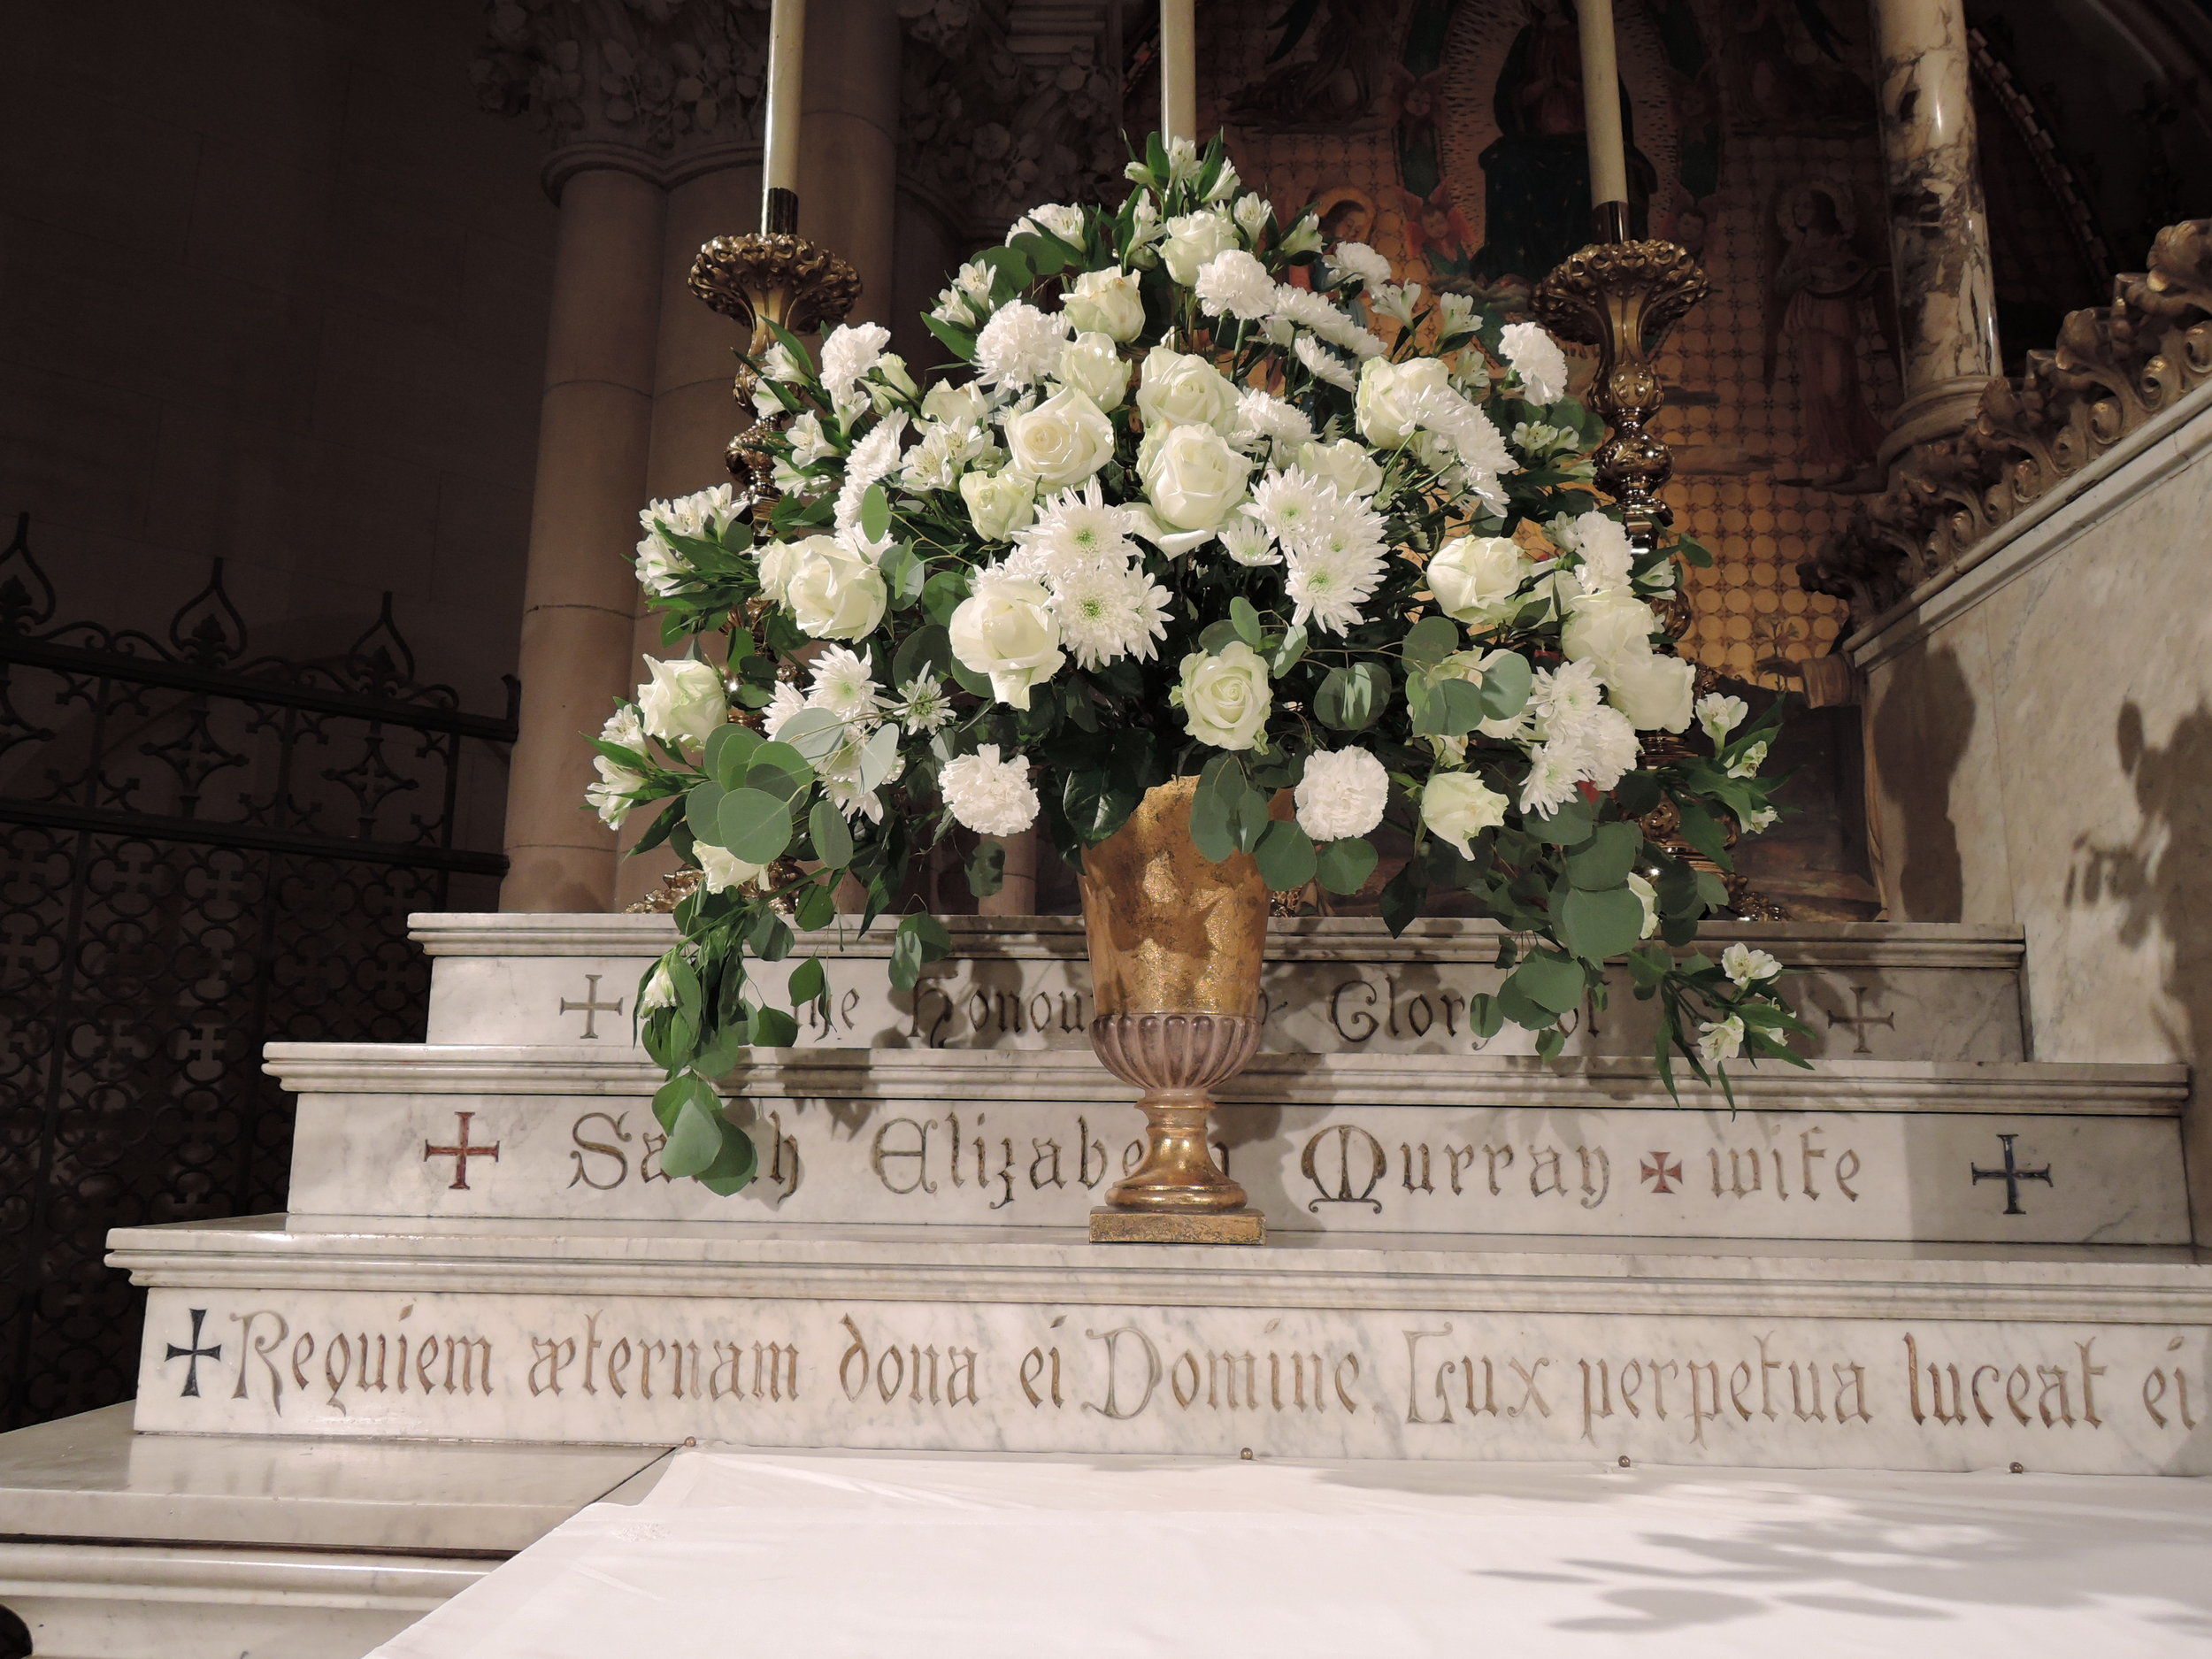 Flowers for the Mass of the Resurrection on Thursday, August 31      Arrangement by Marie Rosseels